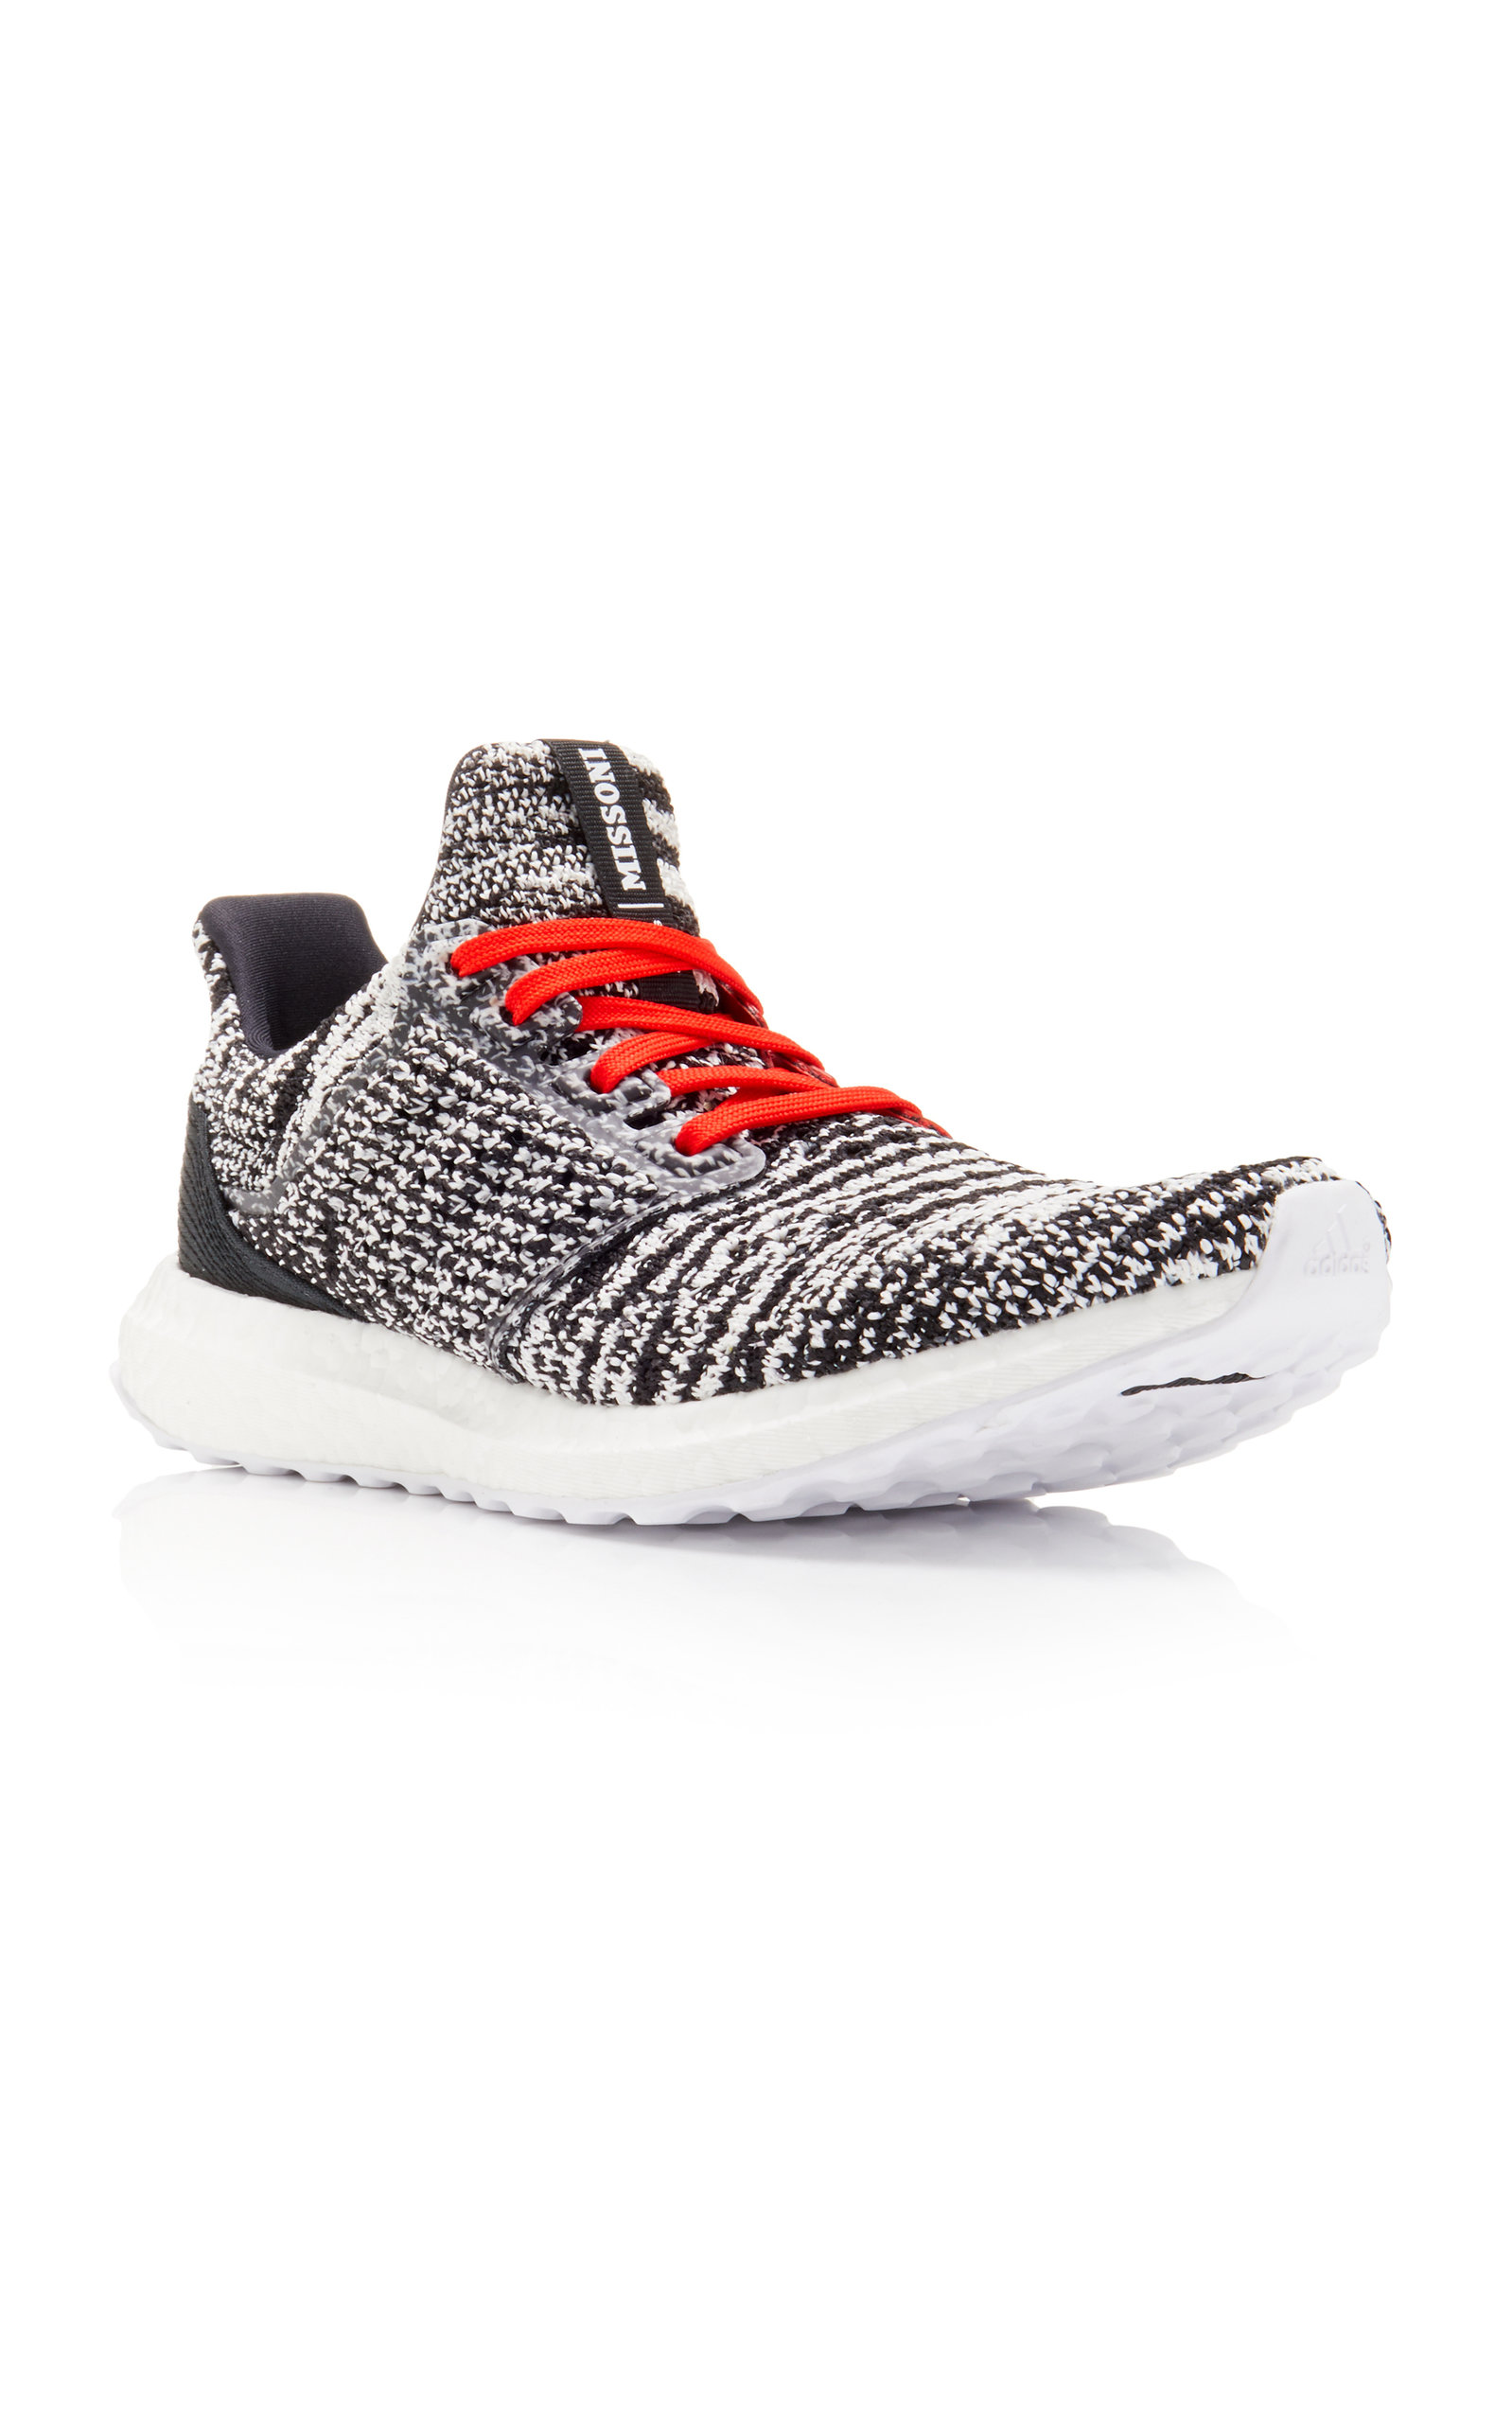 d3f8088aaeb4f adidas x MissoniUltraboost Clima Knit Low-Top Sneakers. CLOSE. Loading.  Loading. Loading. Loading